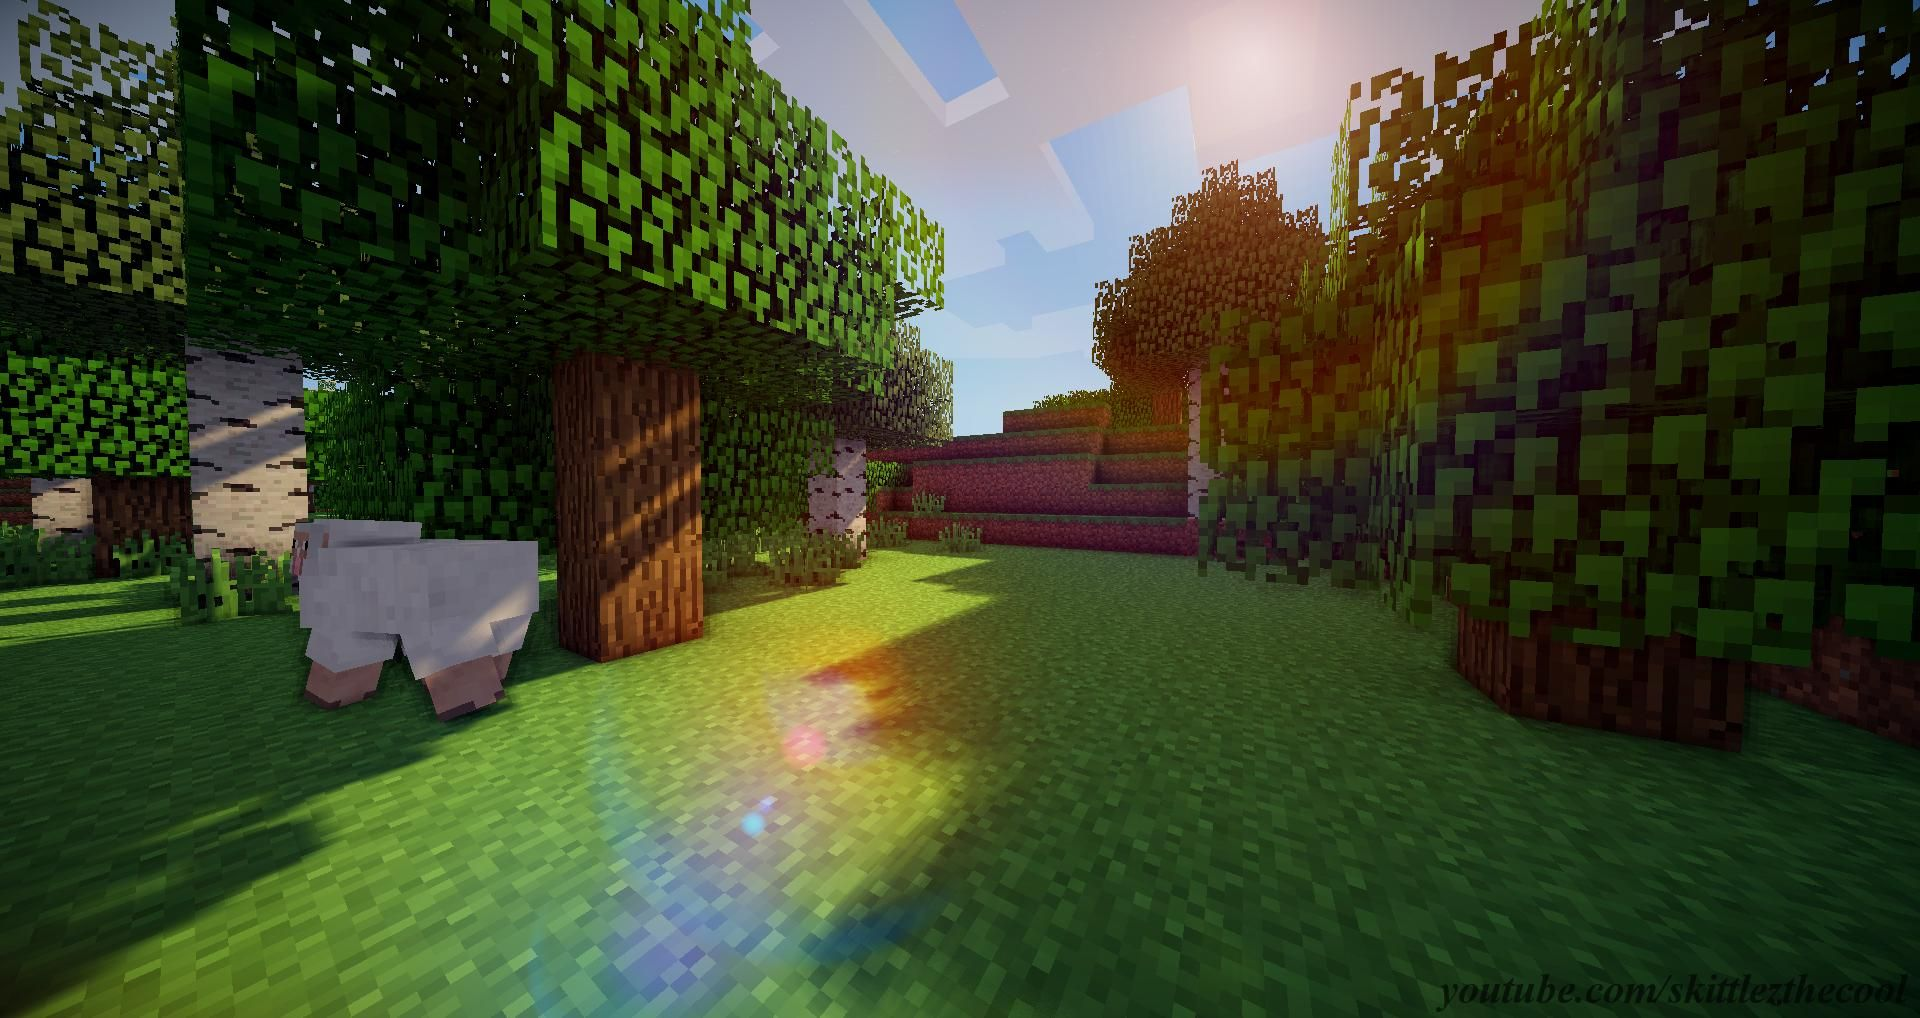 Minecraft Forest Biome Wallpaper W SHADERS